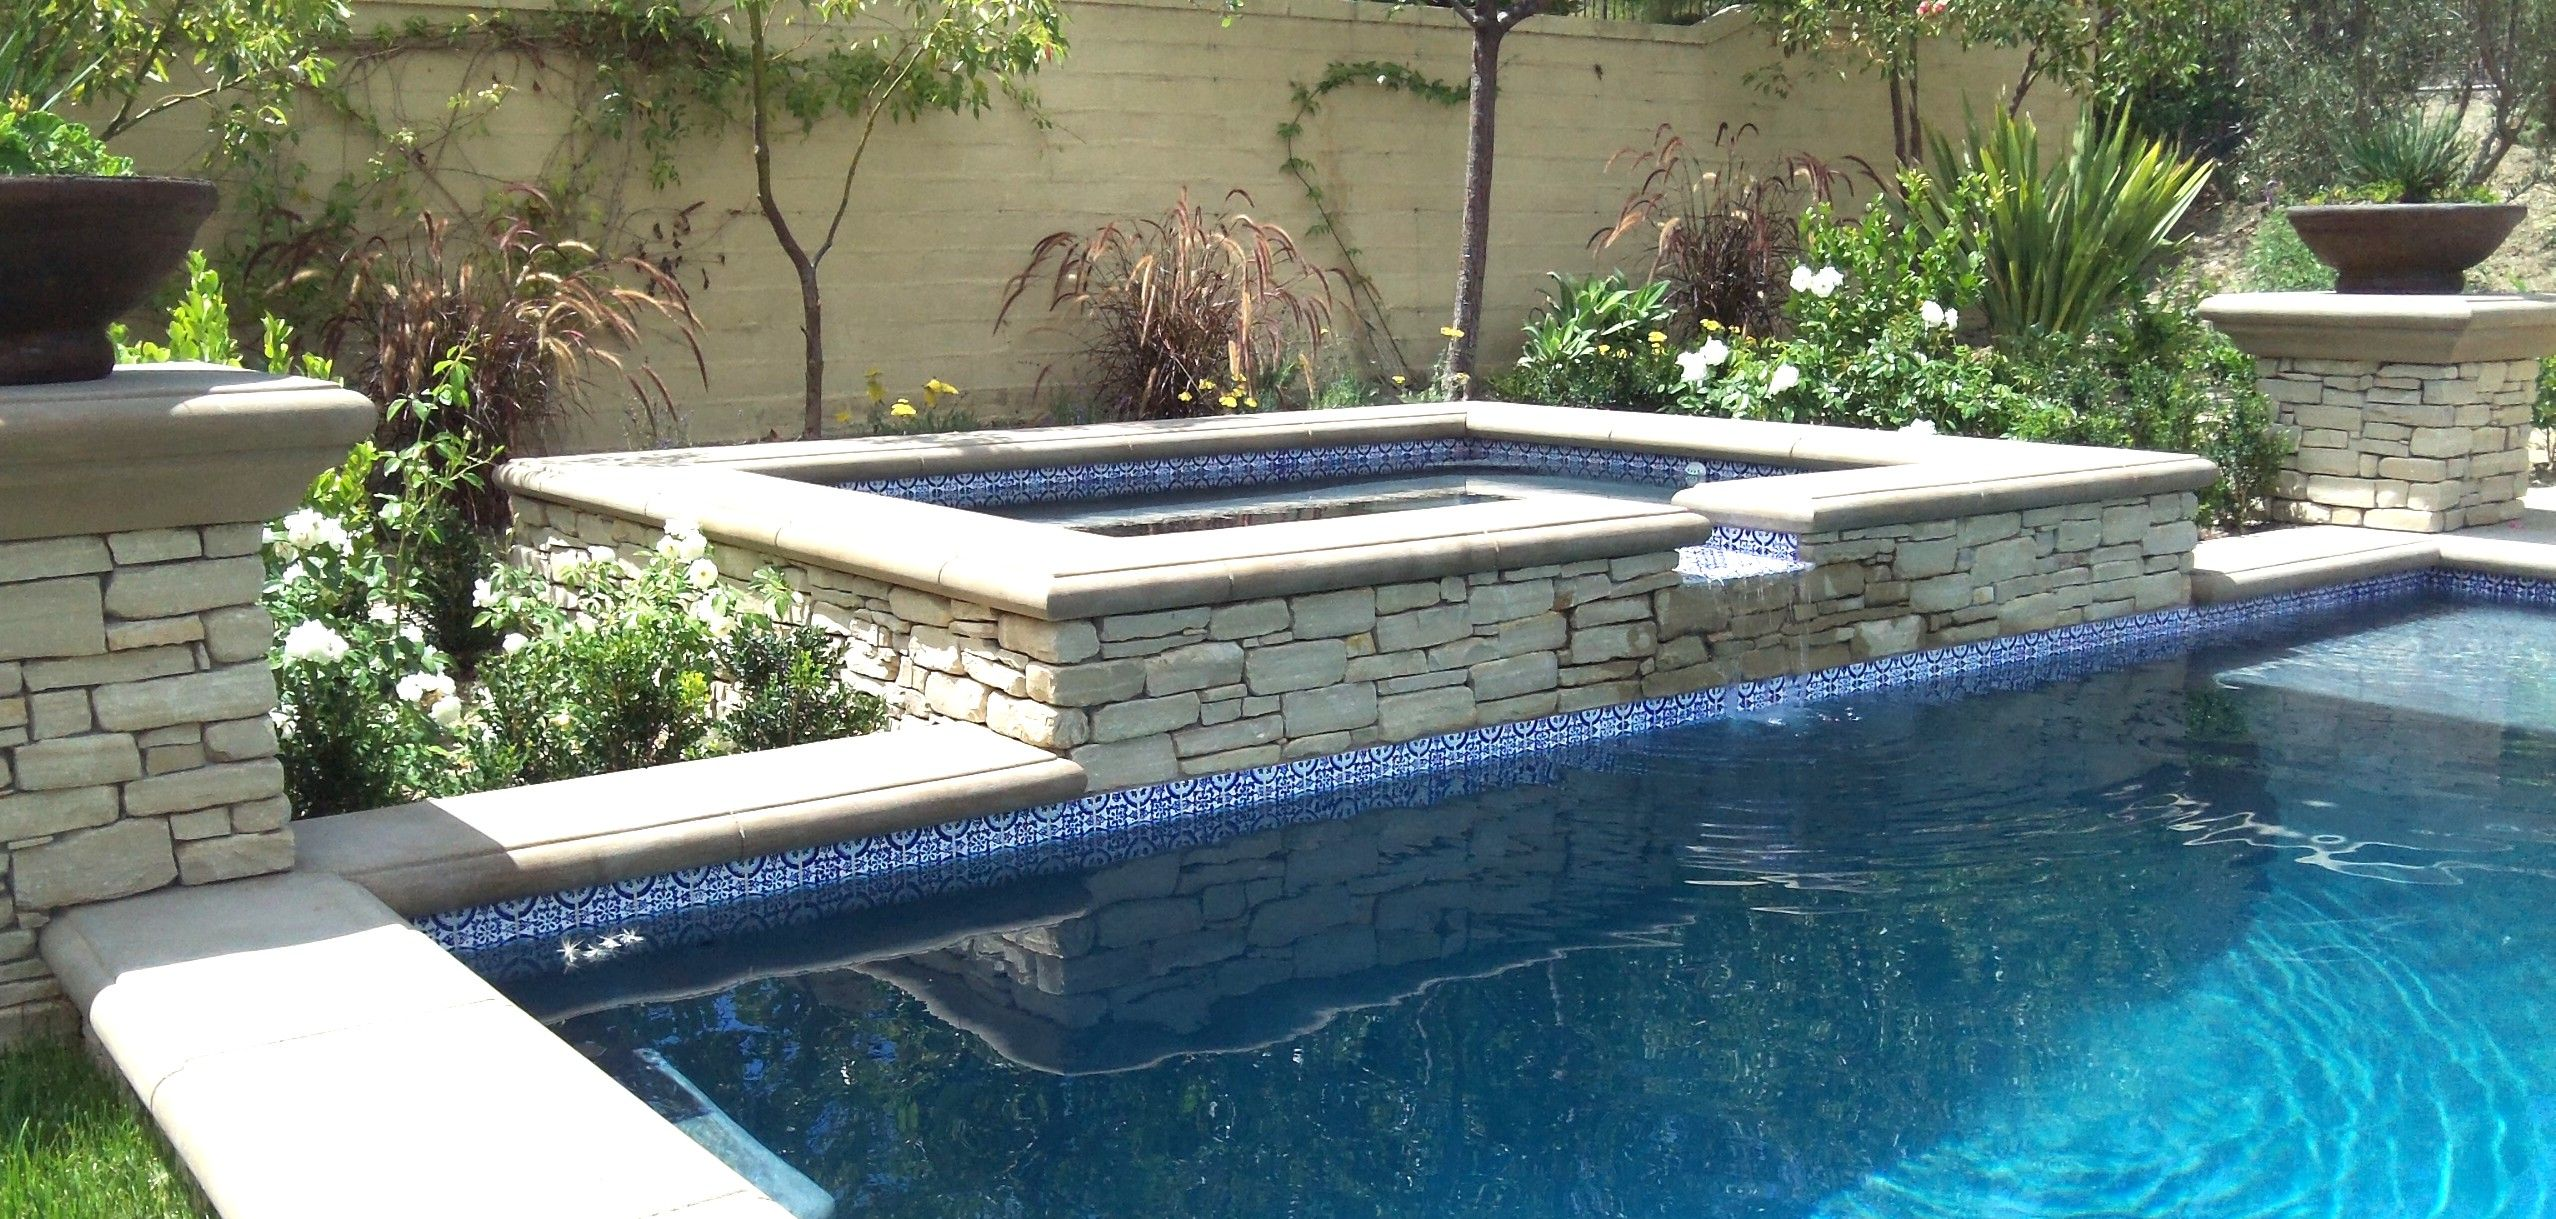 pool tile designs pool water fountain design ideas small swimming pool fountain design - Swimming Pool Tile Designs